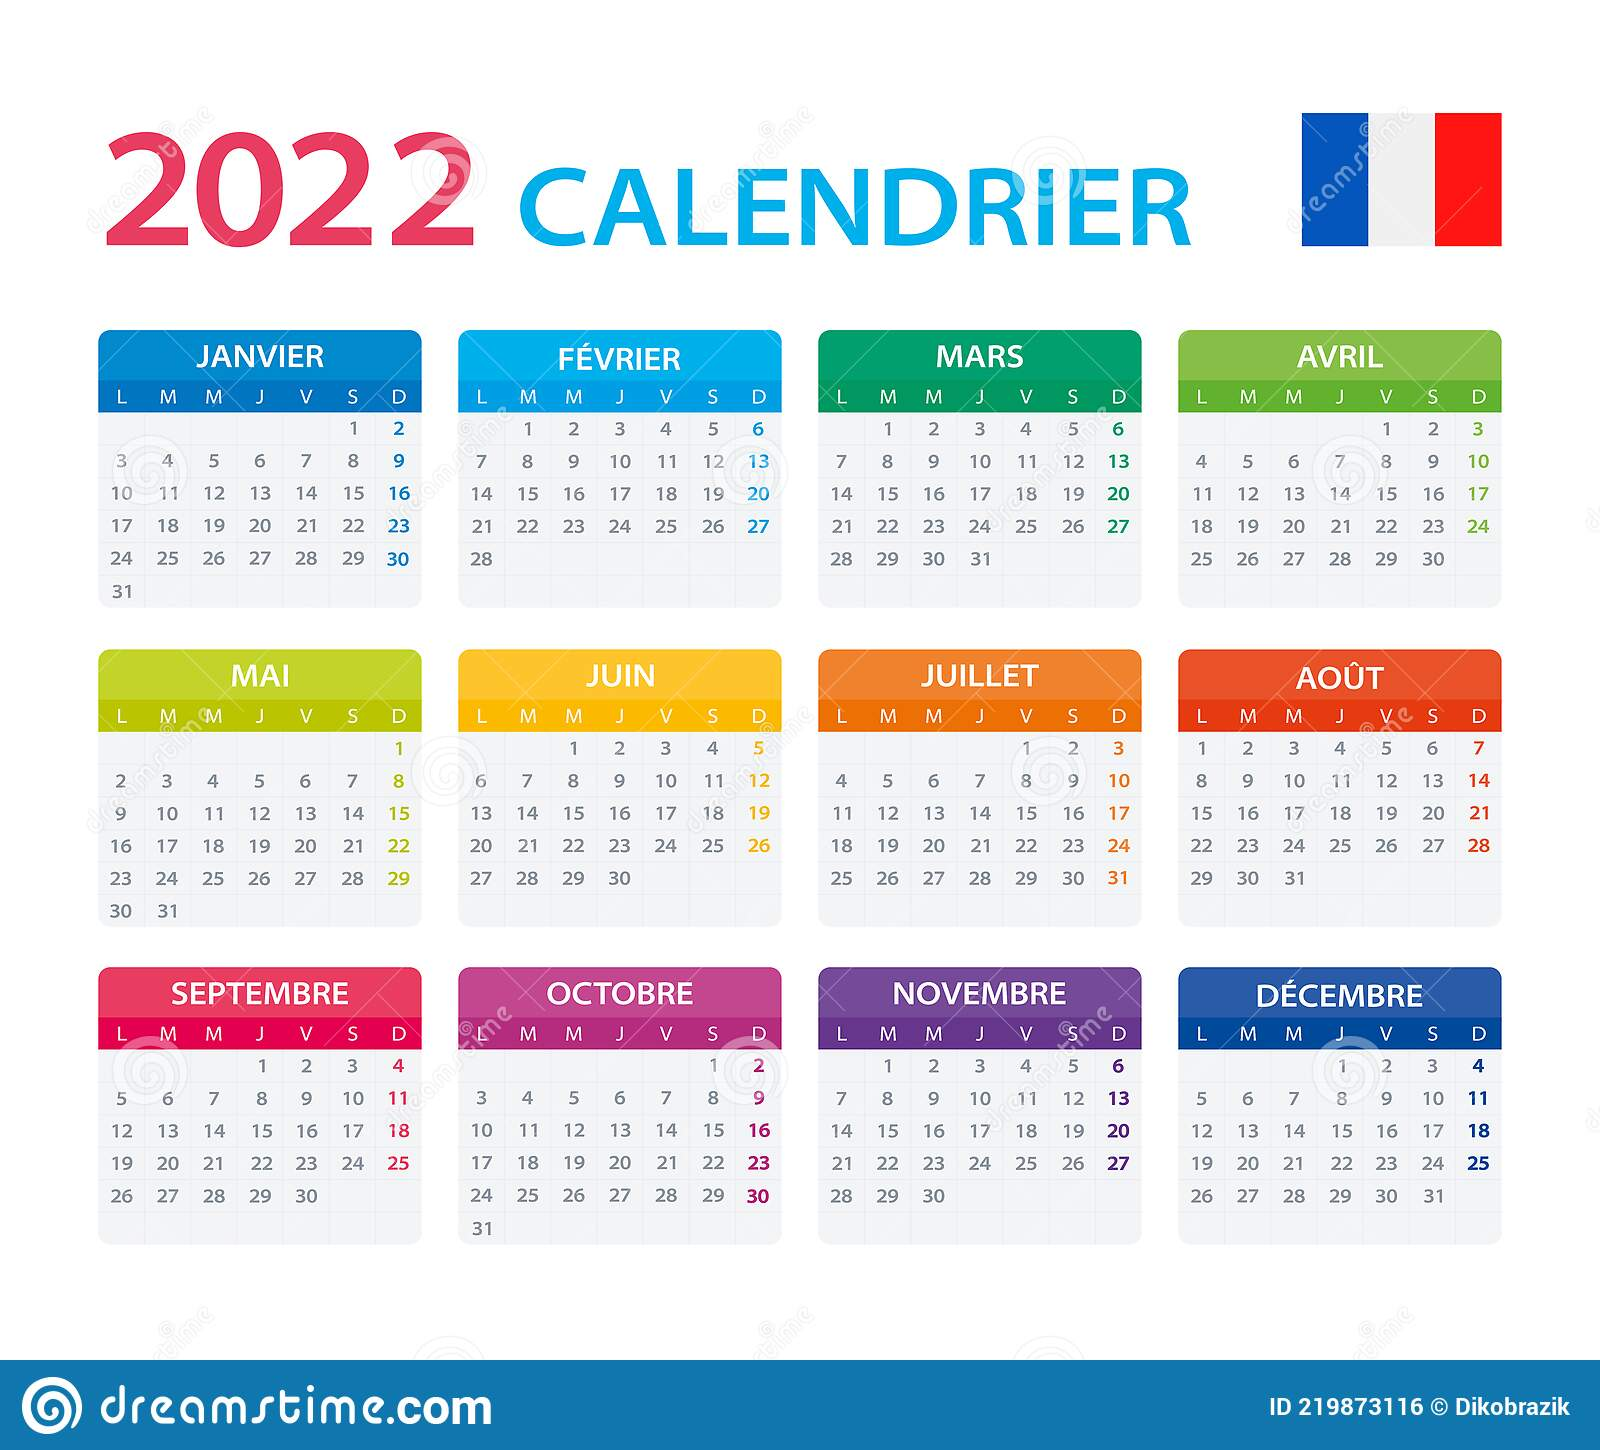 Calendrier Trial 4×4 2022 2022 Calendar French   Vector Illustration, French Version